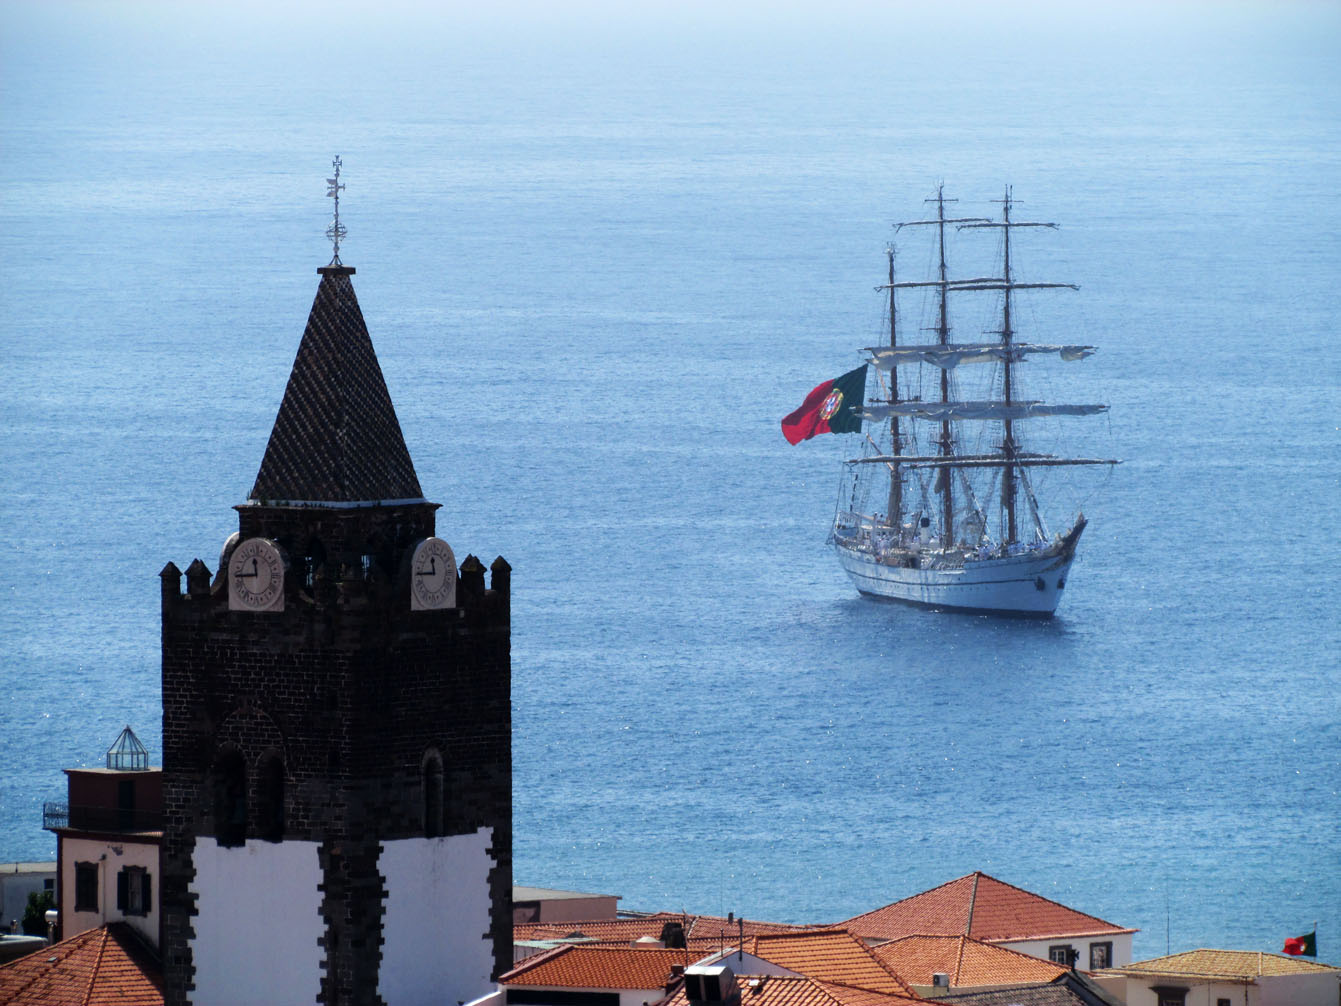 Sagres training ship and the cathedral